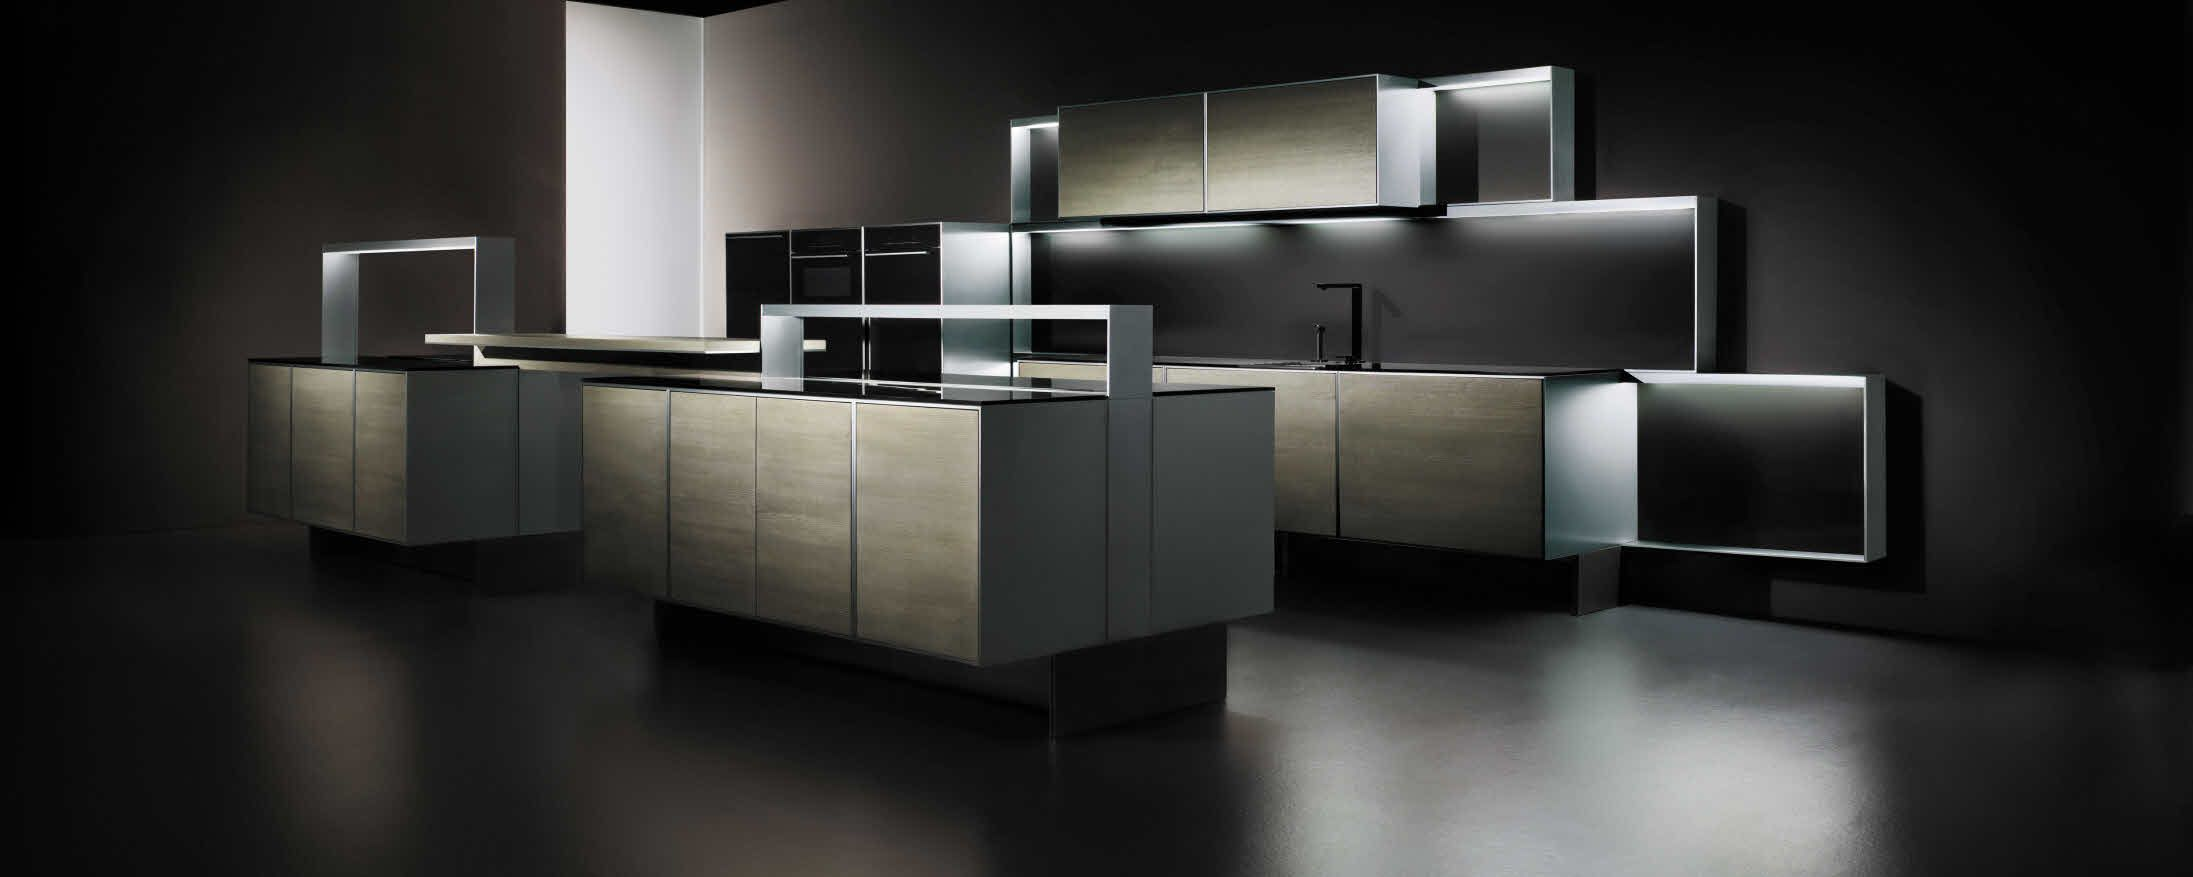 One Of The Few Auto Brands To Dabble In Kitchen Design Porsche Inspiration Kitchen Design Brands Decorating Inspiration